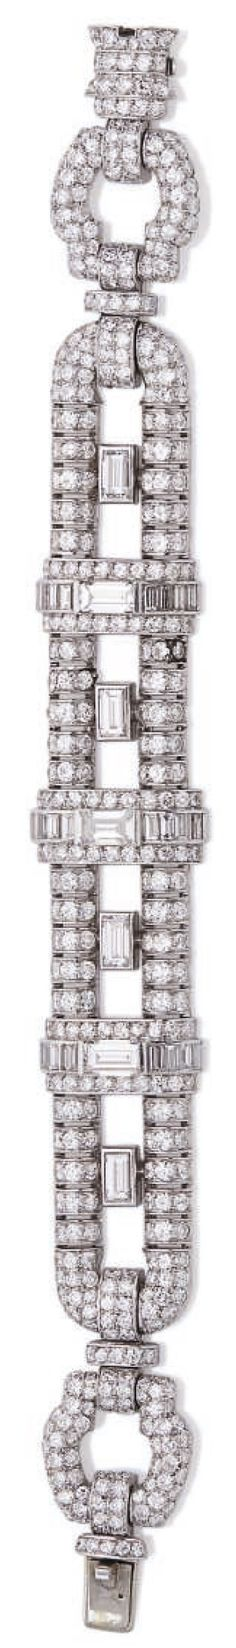 AN ART DECO DIAMOND AND PLATINUM BRACELET , CIRCA 1930. The fully articulated bracelet consisting of geometric openwork links pavé set with round and baguette diamonds, mounted in platinum.